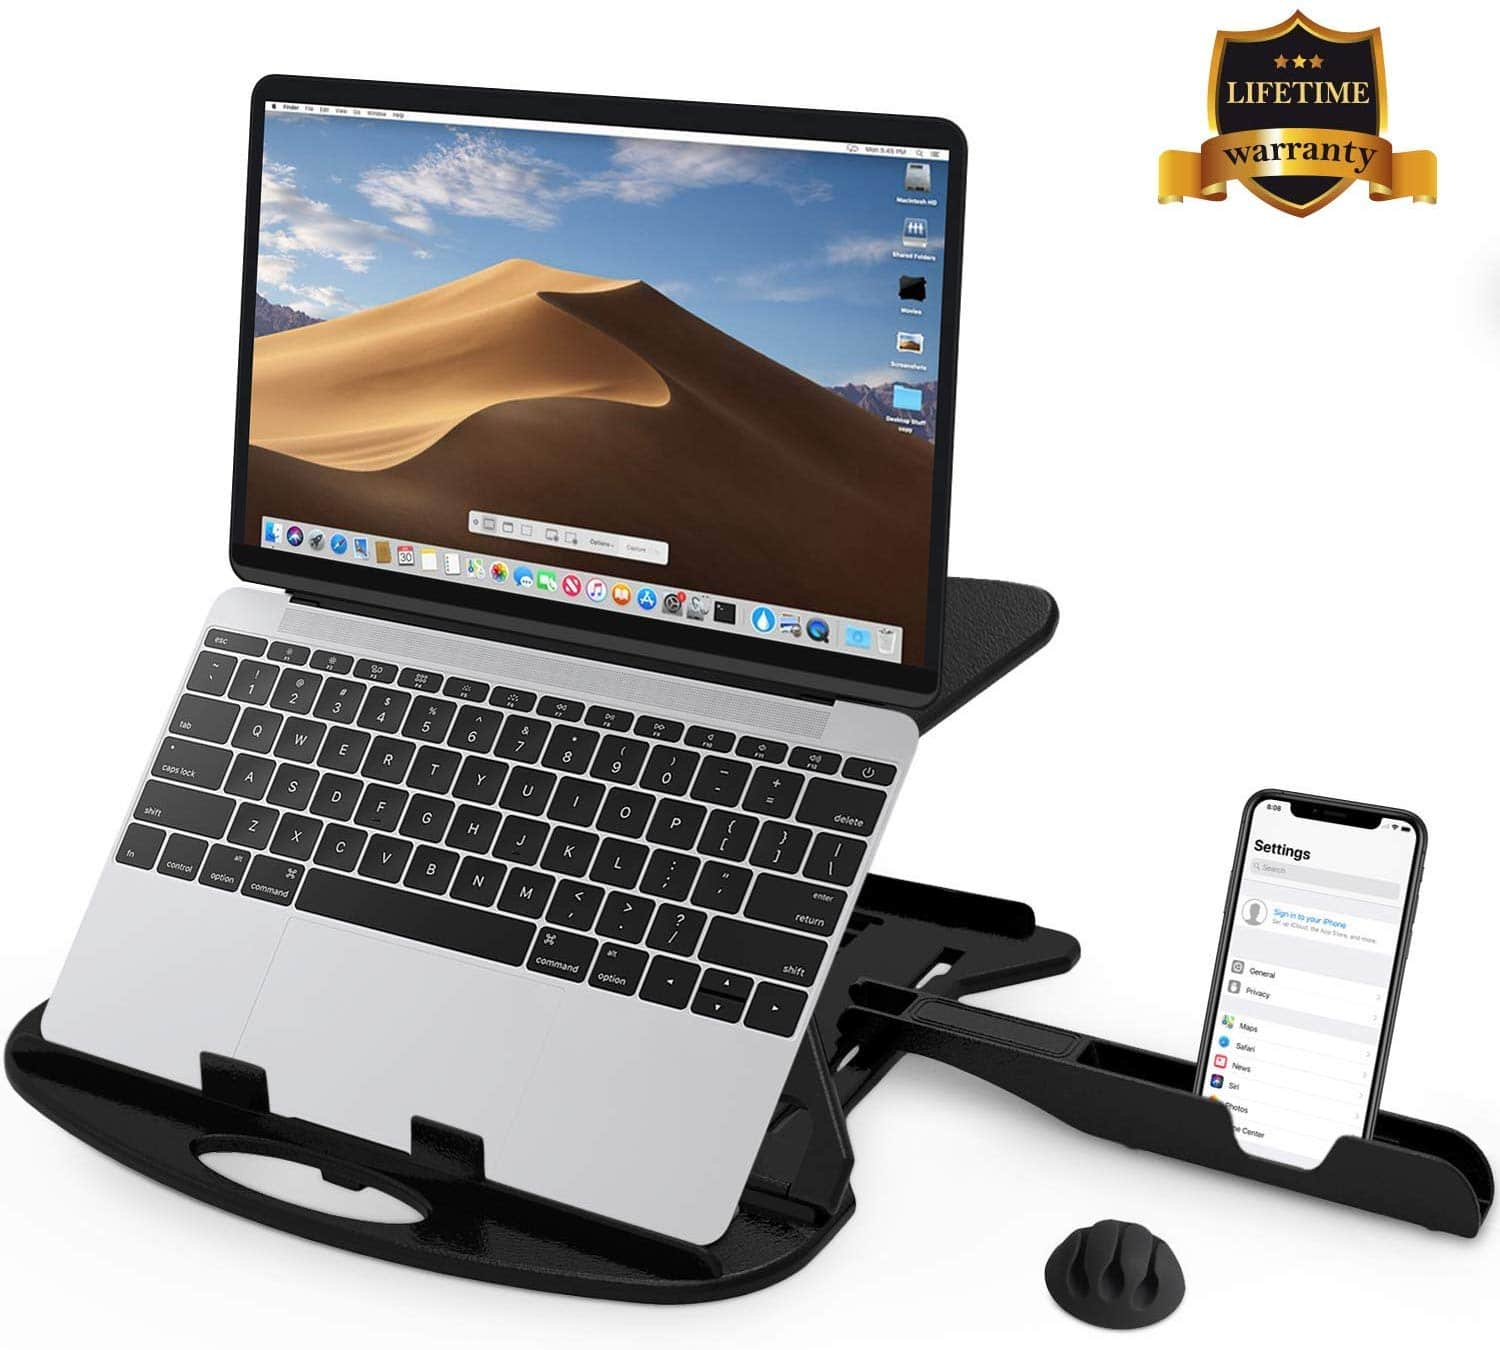 Adjustable Laptop Stands Patented Riser Ventilated Portable Foldable Swivel Compatible with MacBook Notebook Tablet Tray Desk Table Book with Free Phone Stand and Cable Clip